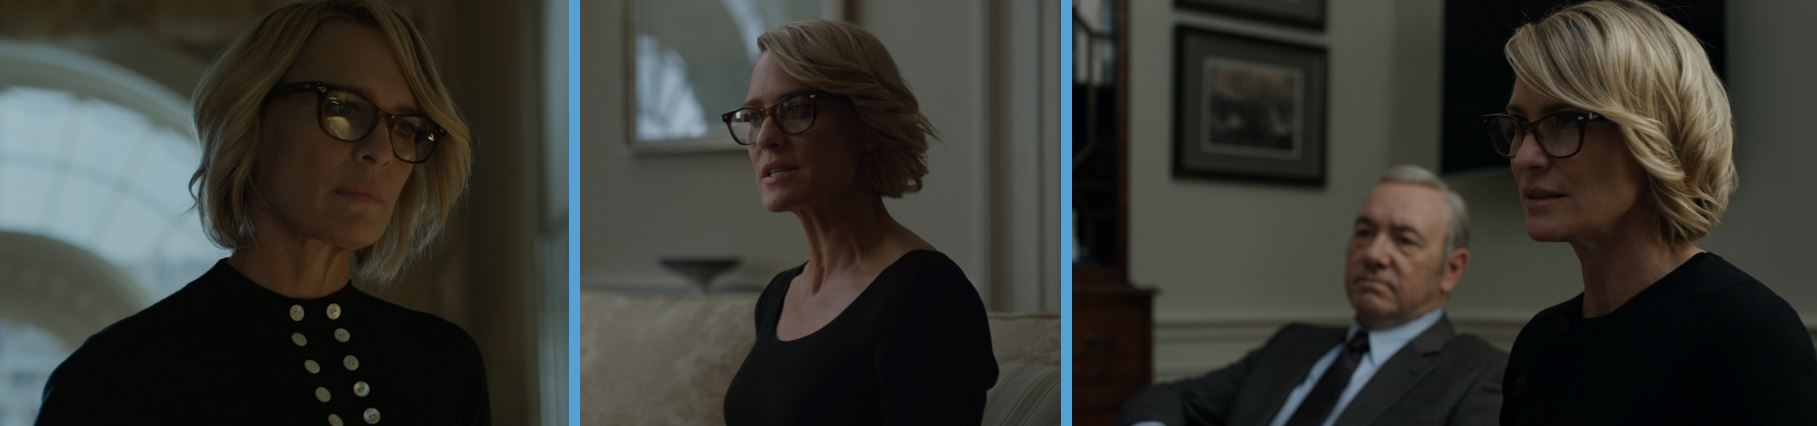 Moscot house of cards season 5 product placement branding claire underwood